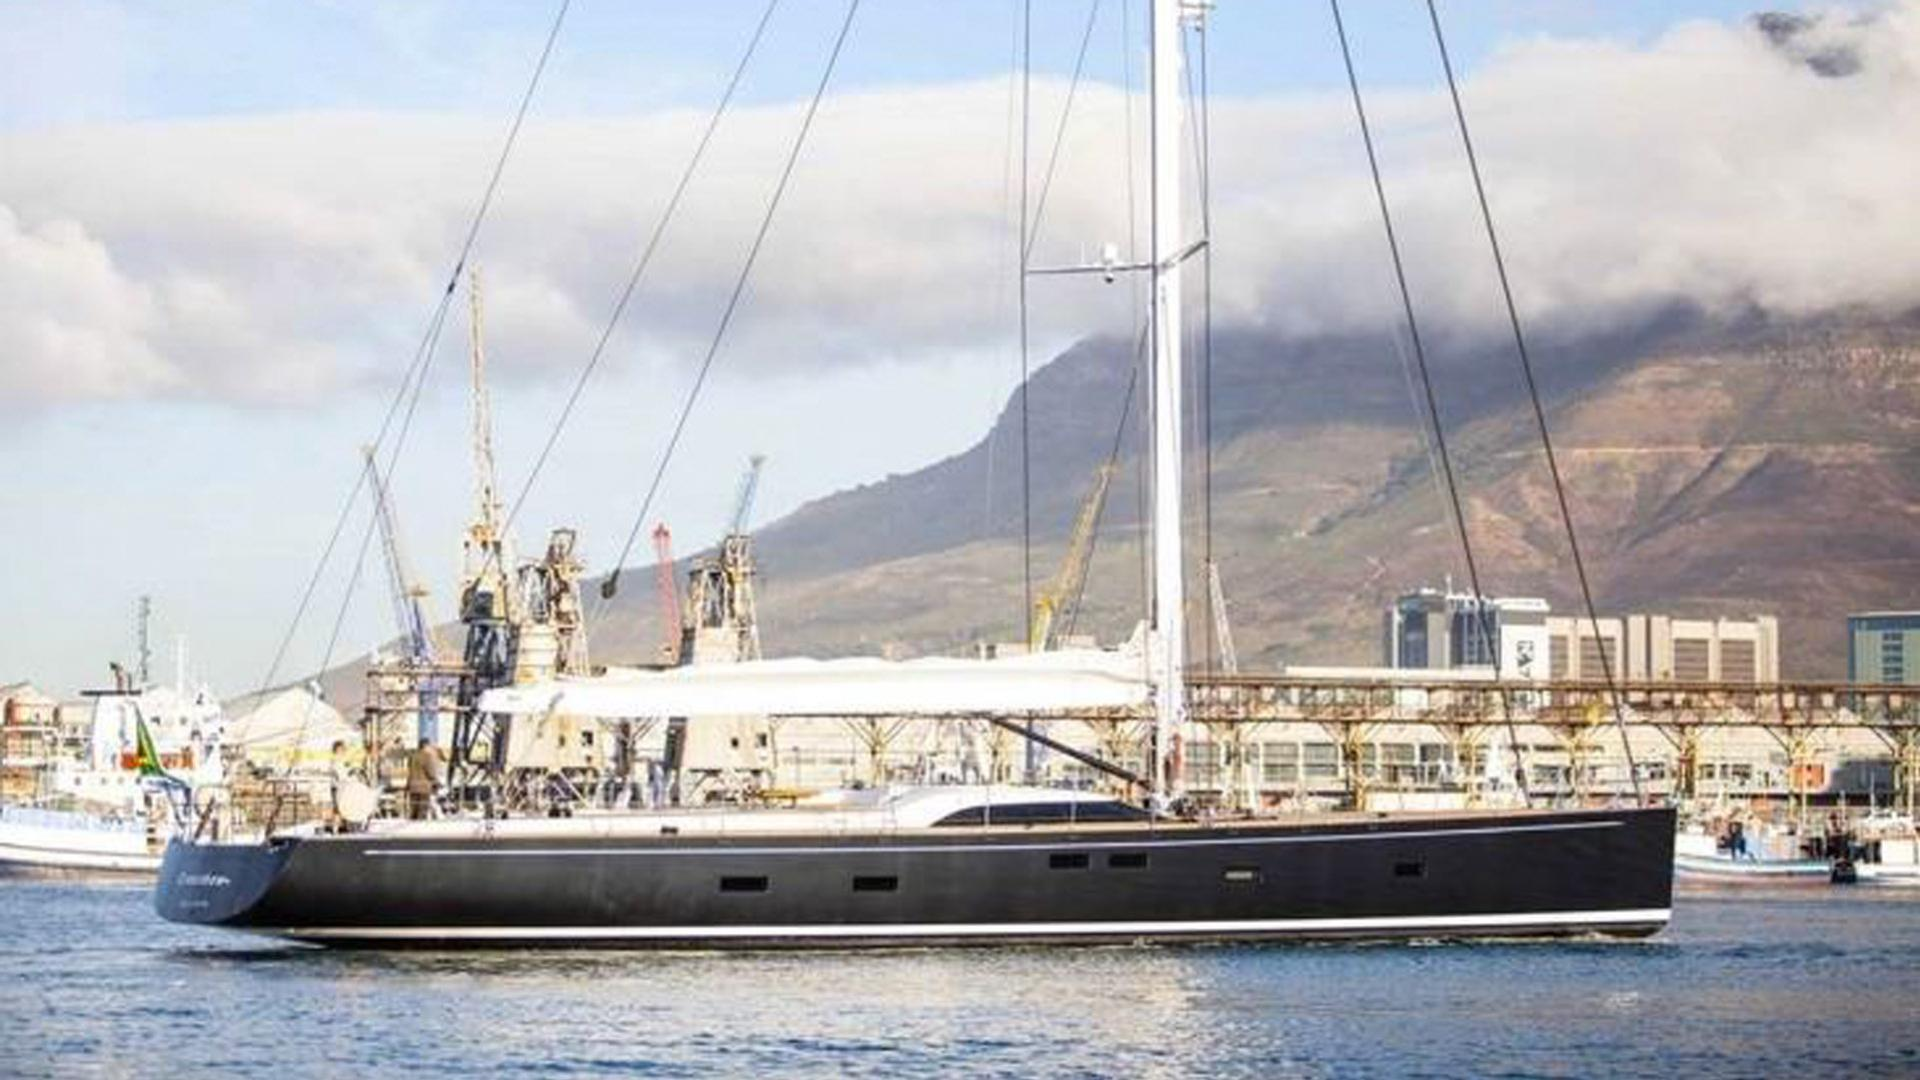 crossbow sailing yacht southern wind shipyard sws 102 2016 32m profile